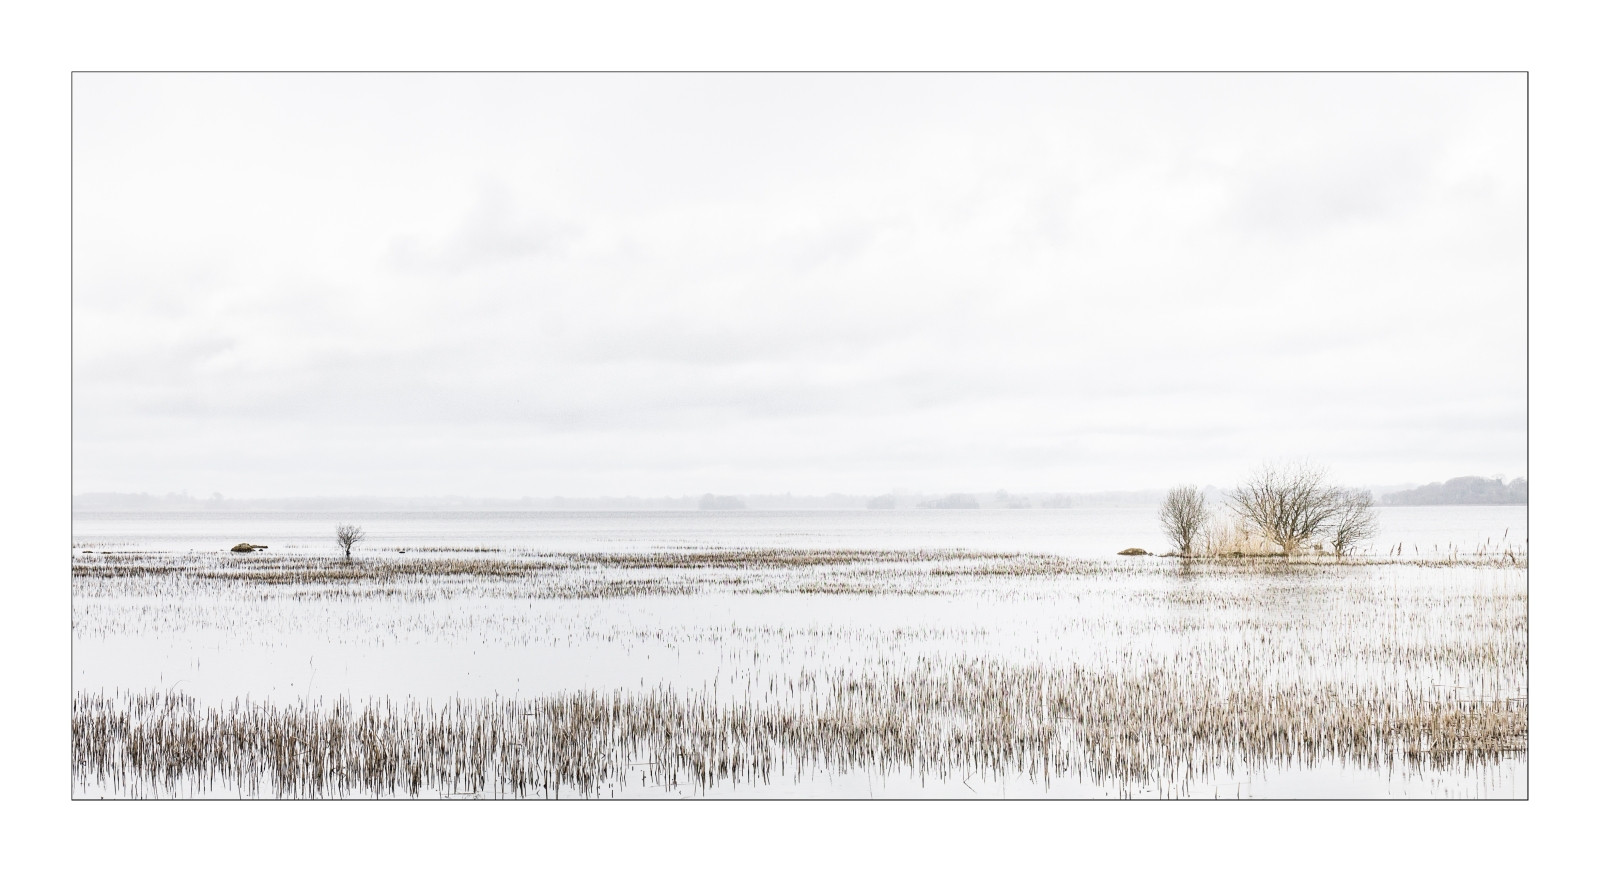 PDI - Lough Ennell by Judith Kimber (9 marks)